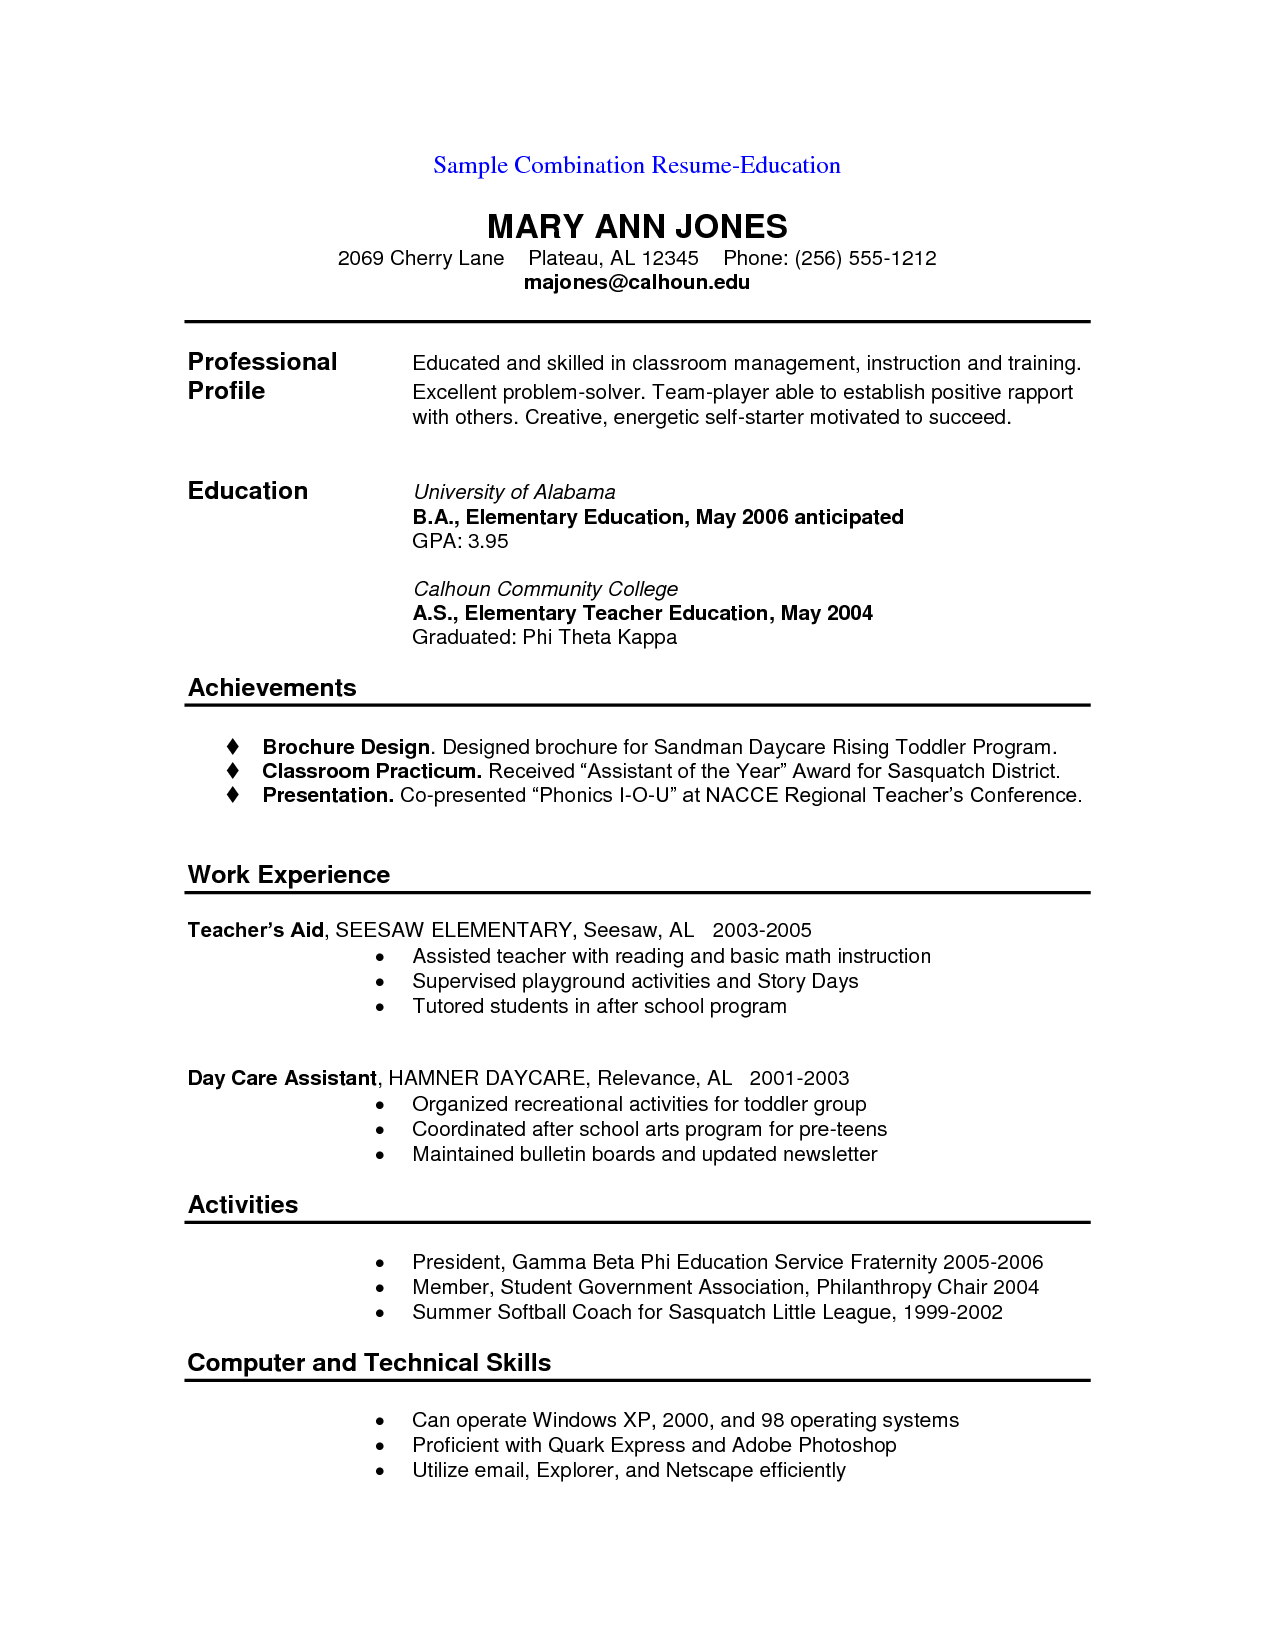 Resume Format Rules